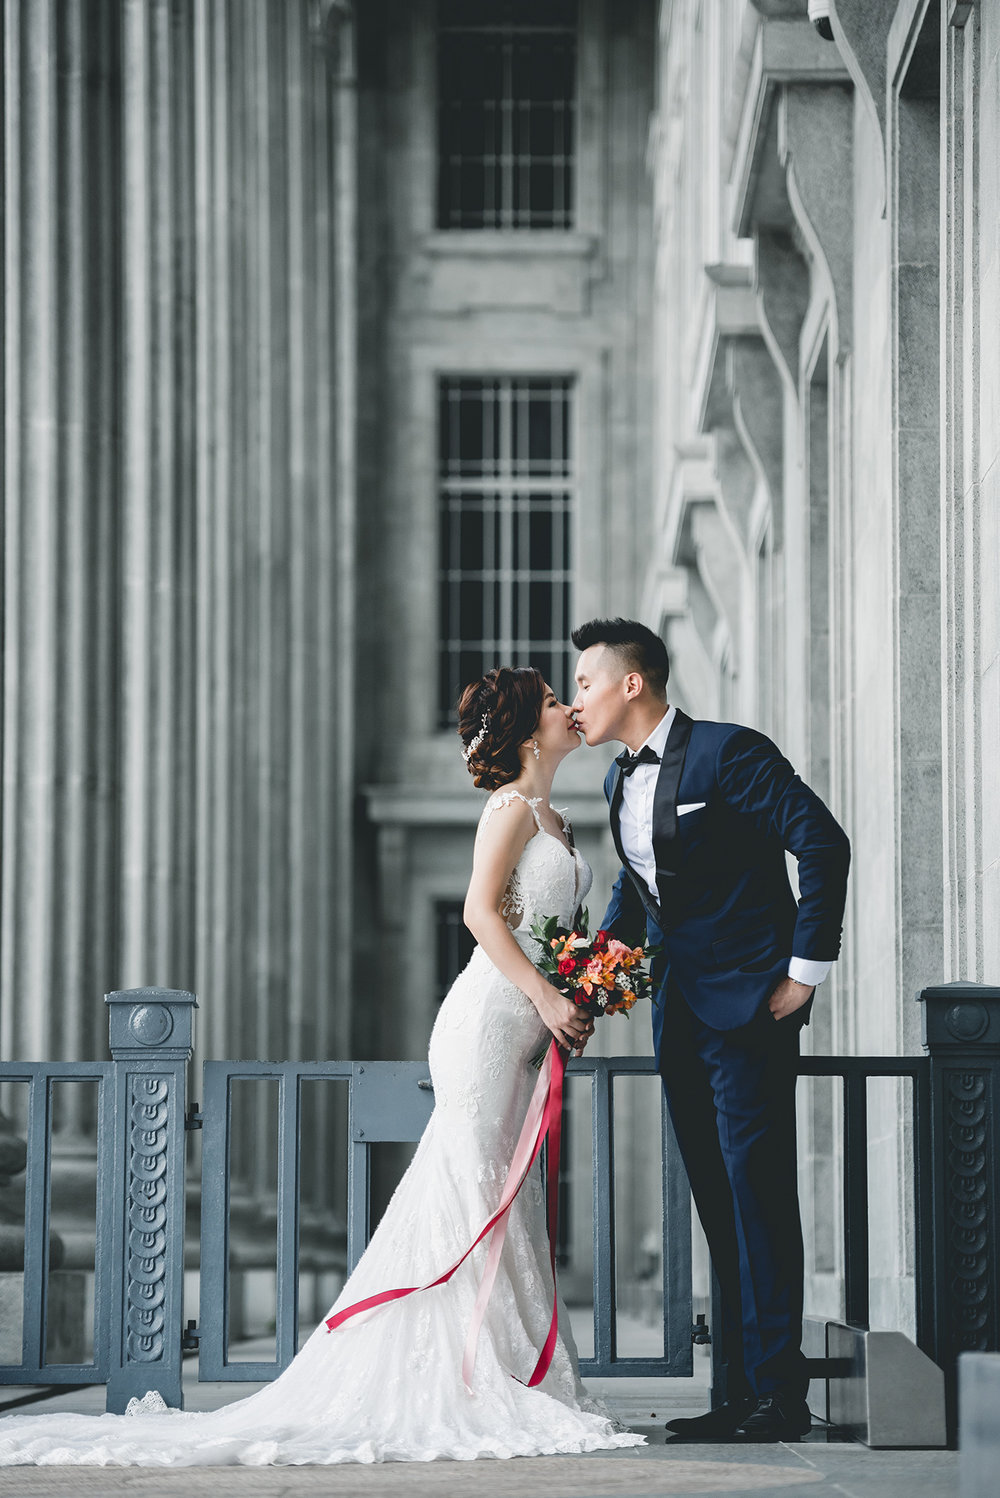 Singapore Prewedding 39.JPG